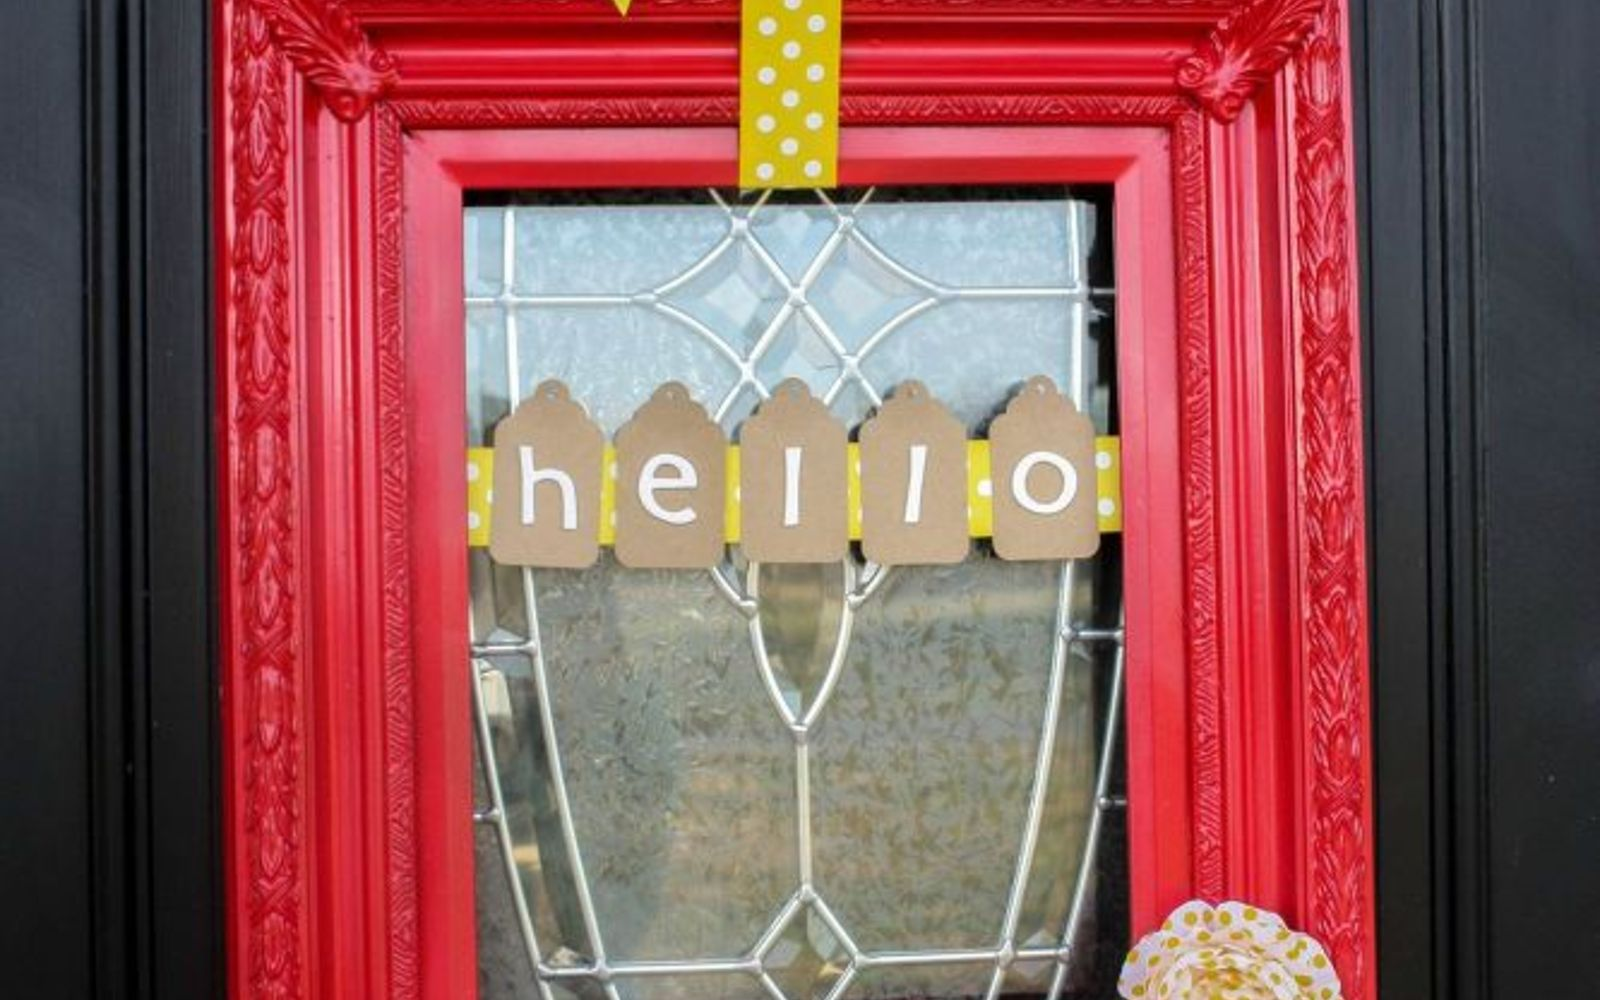 s 31 gorgeous spring wreaths that will make your neighbors smile, crafts, seasonal holiday decor, wreaths, Spray paint an old frame for this door look